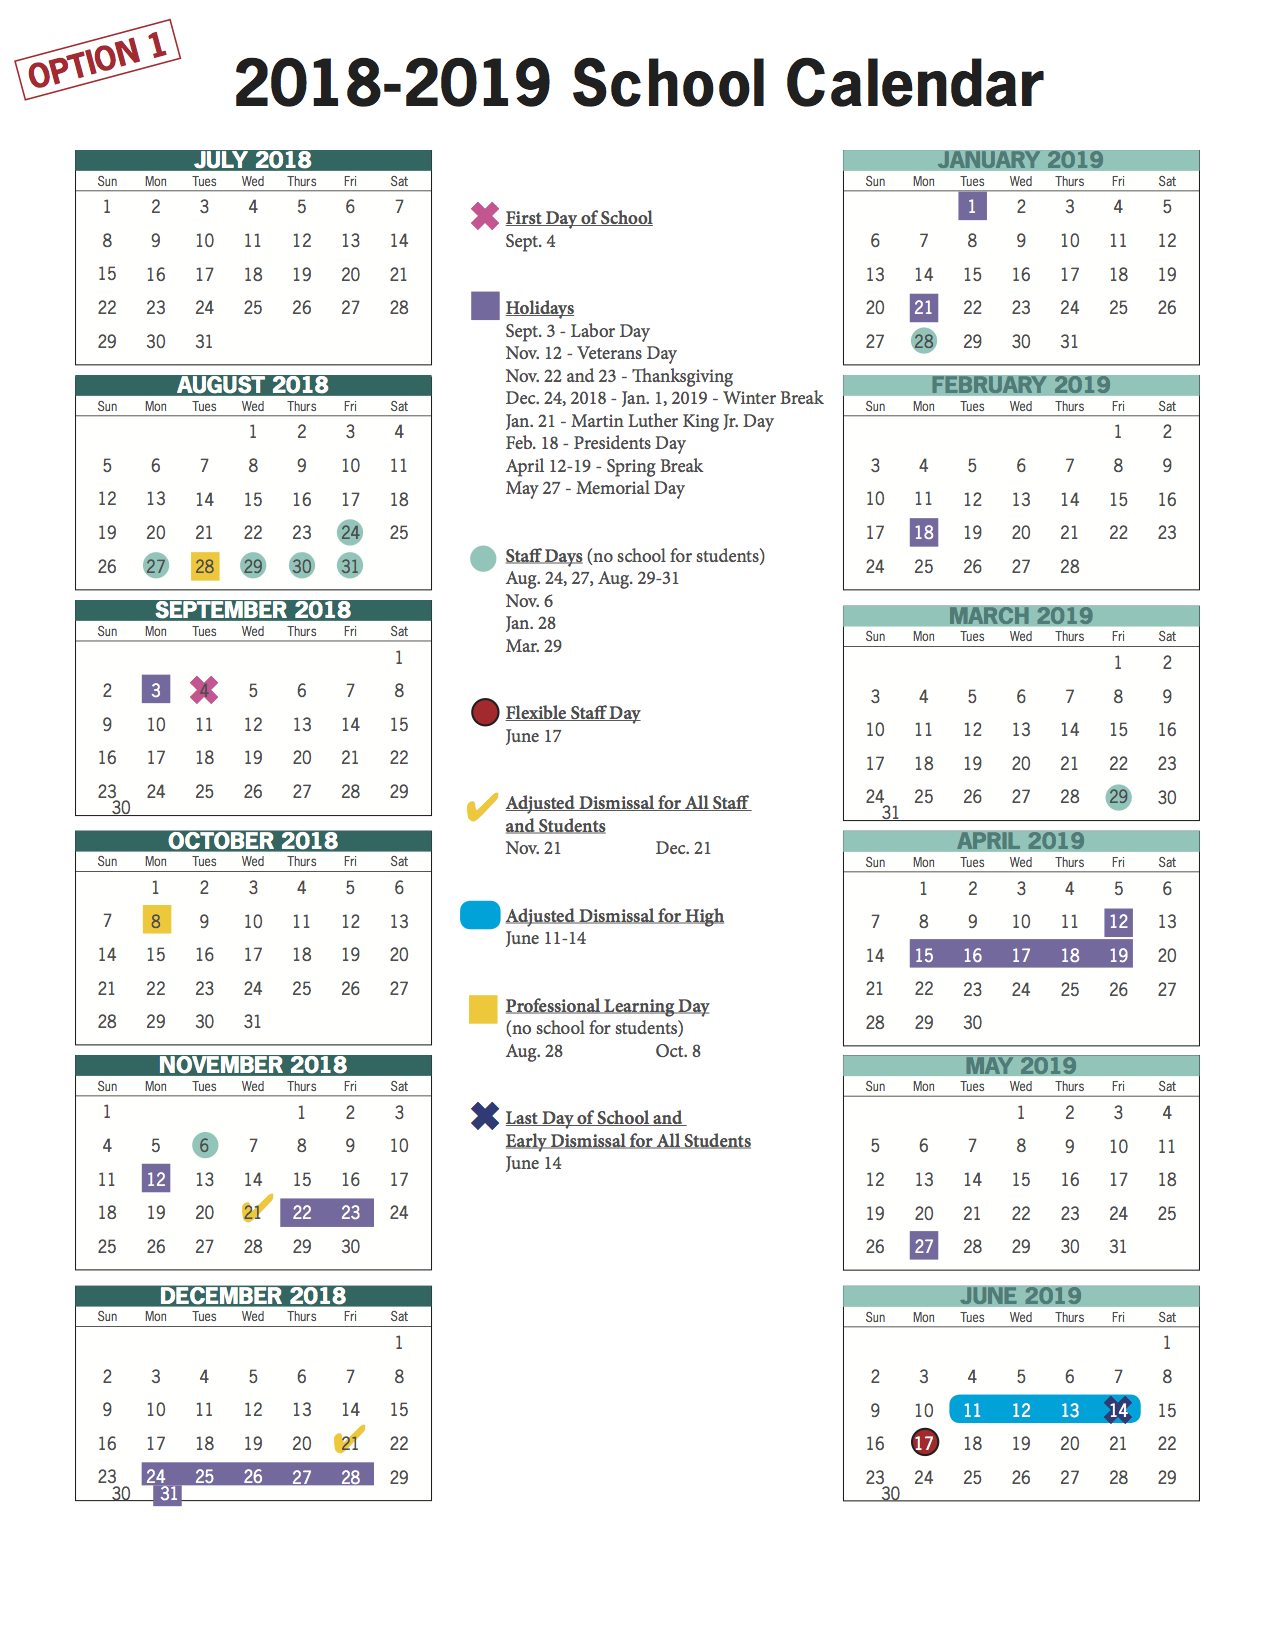 Vbcps E-Town Hall - 2018-2019 And 2019-2020 School Calendar throughout Virginia Beach City Public.schools Calendar